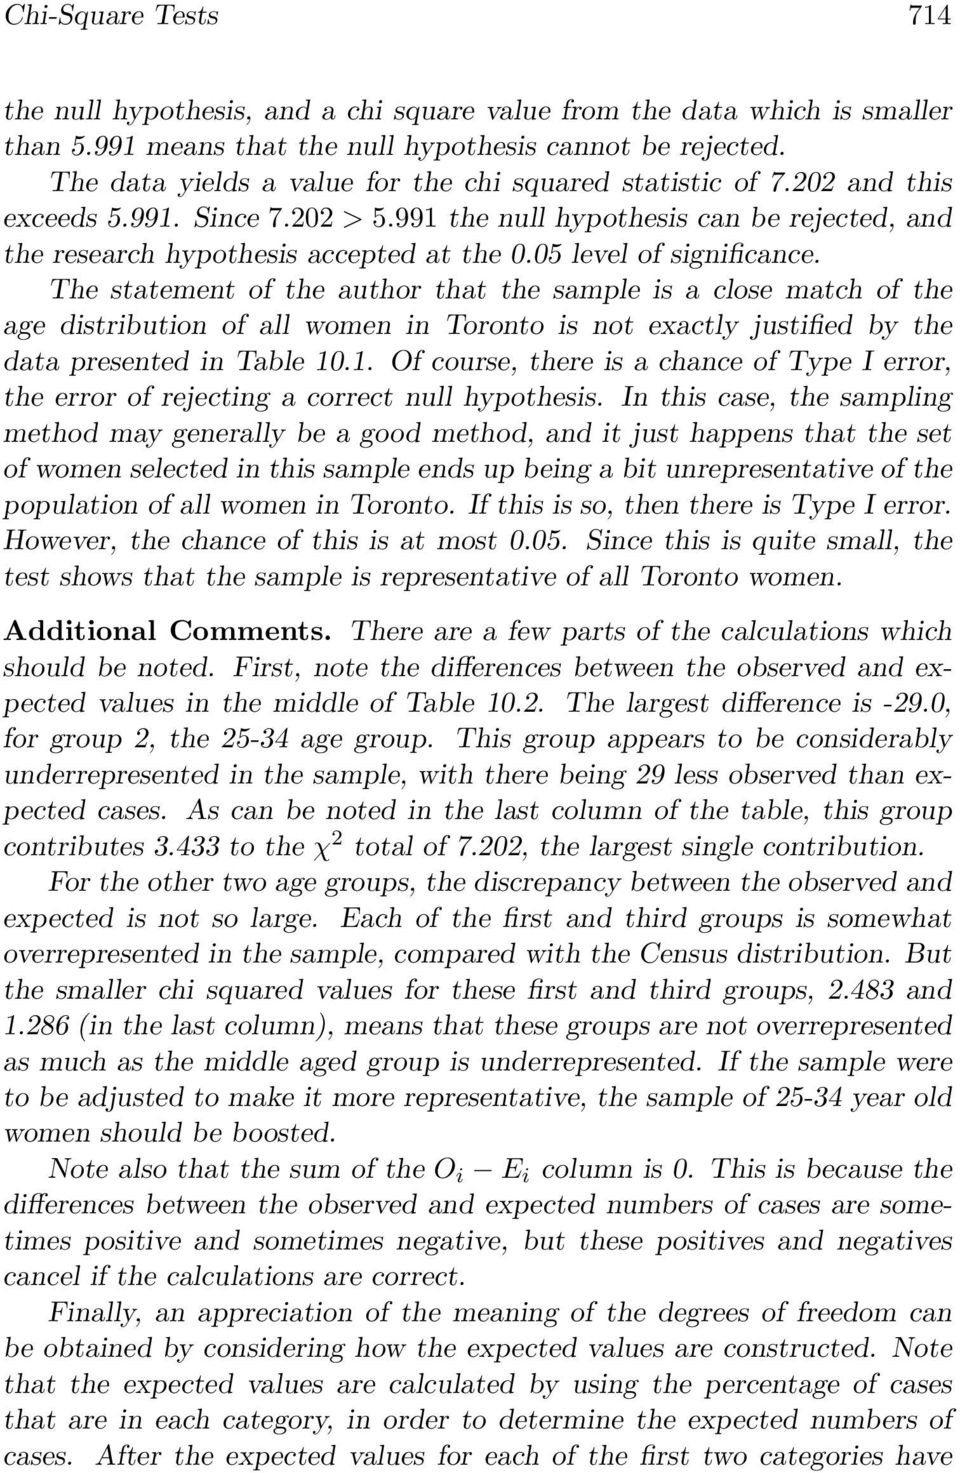 05 level of significance. The statement of the author that the sample is a close match of the age distribution of all women in Toronto is not exactly justified by the data presented in Table 10